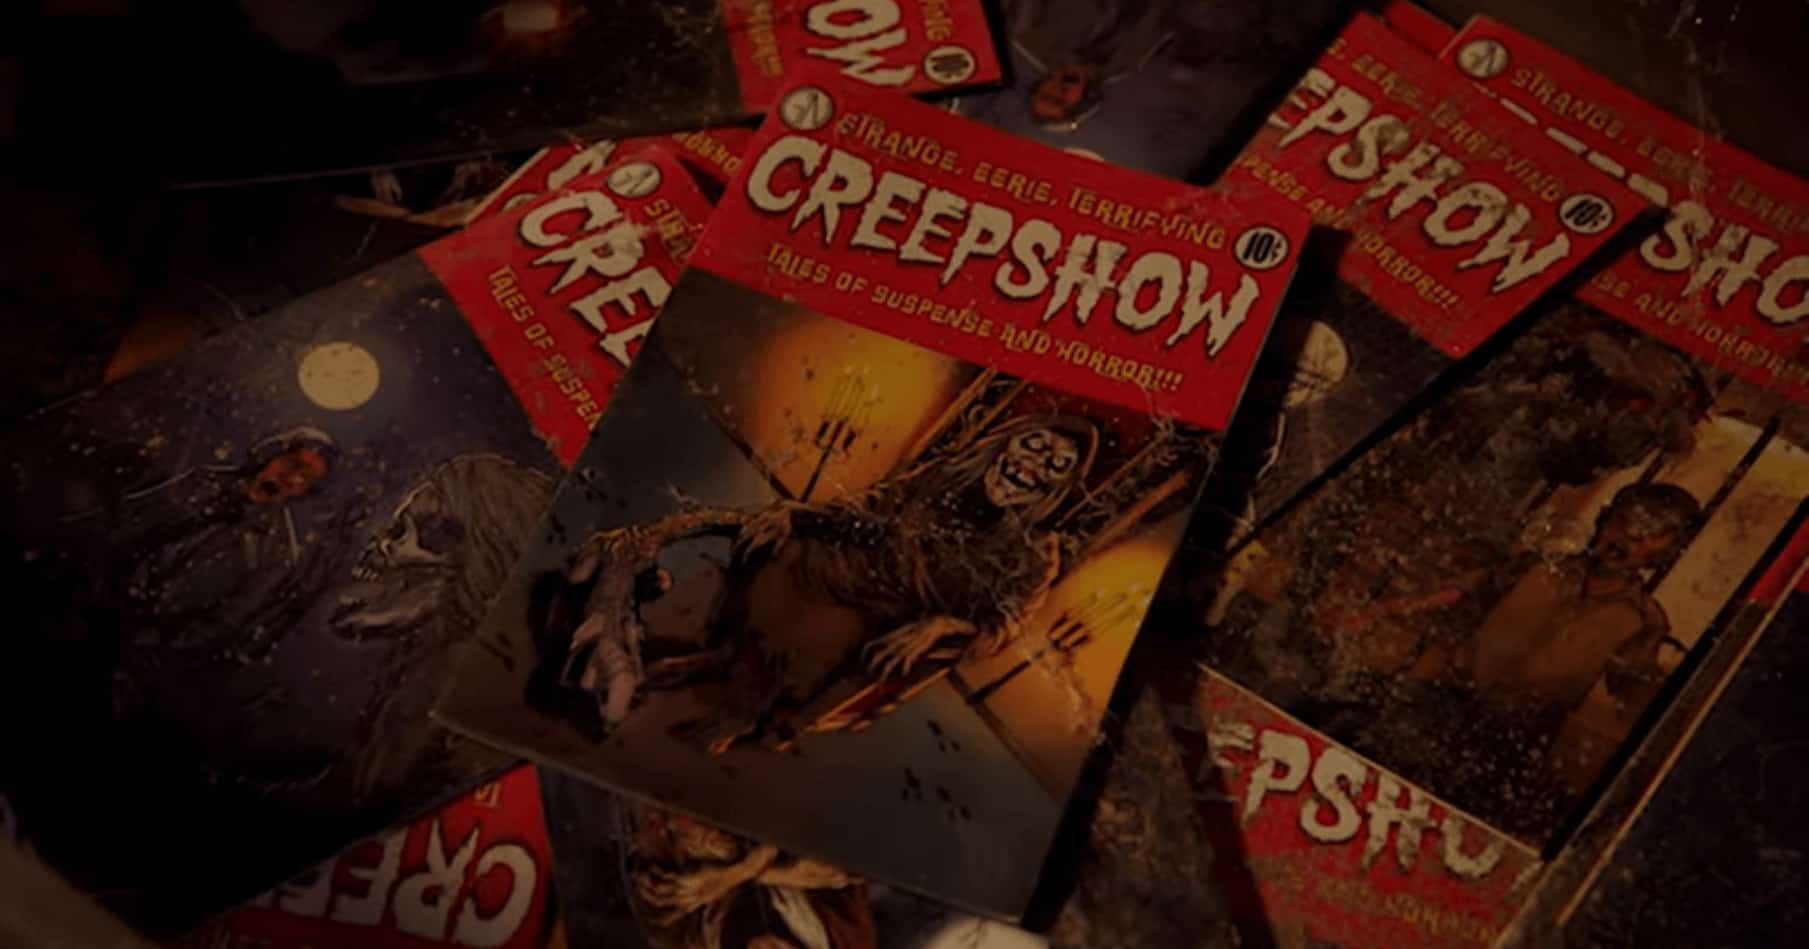 The Creepshow Trailer